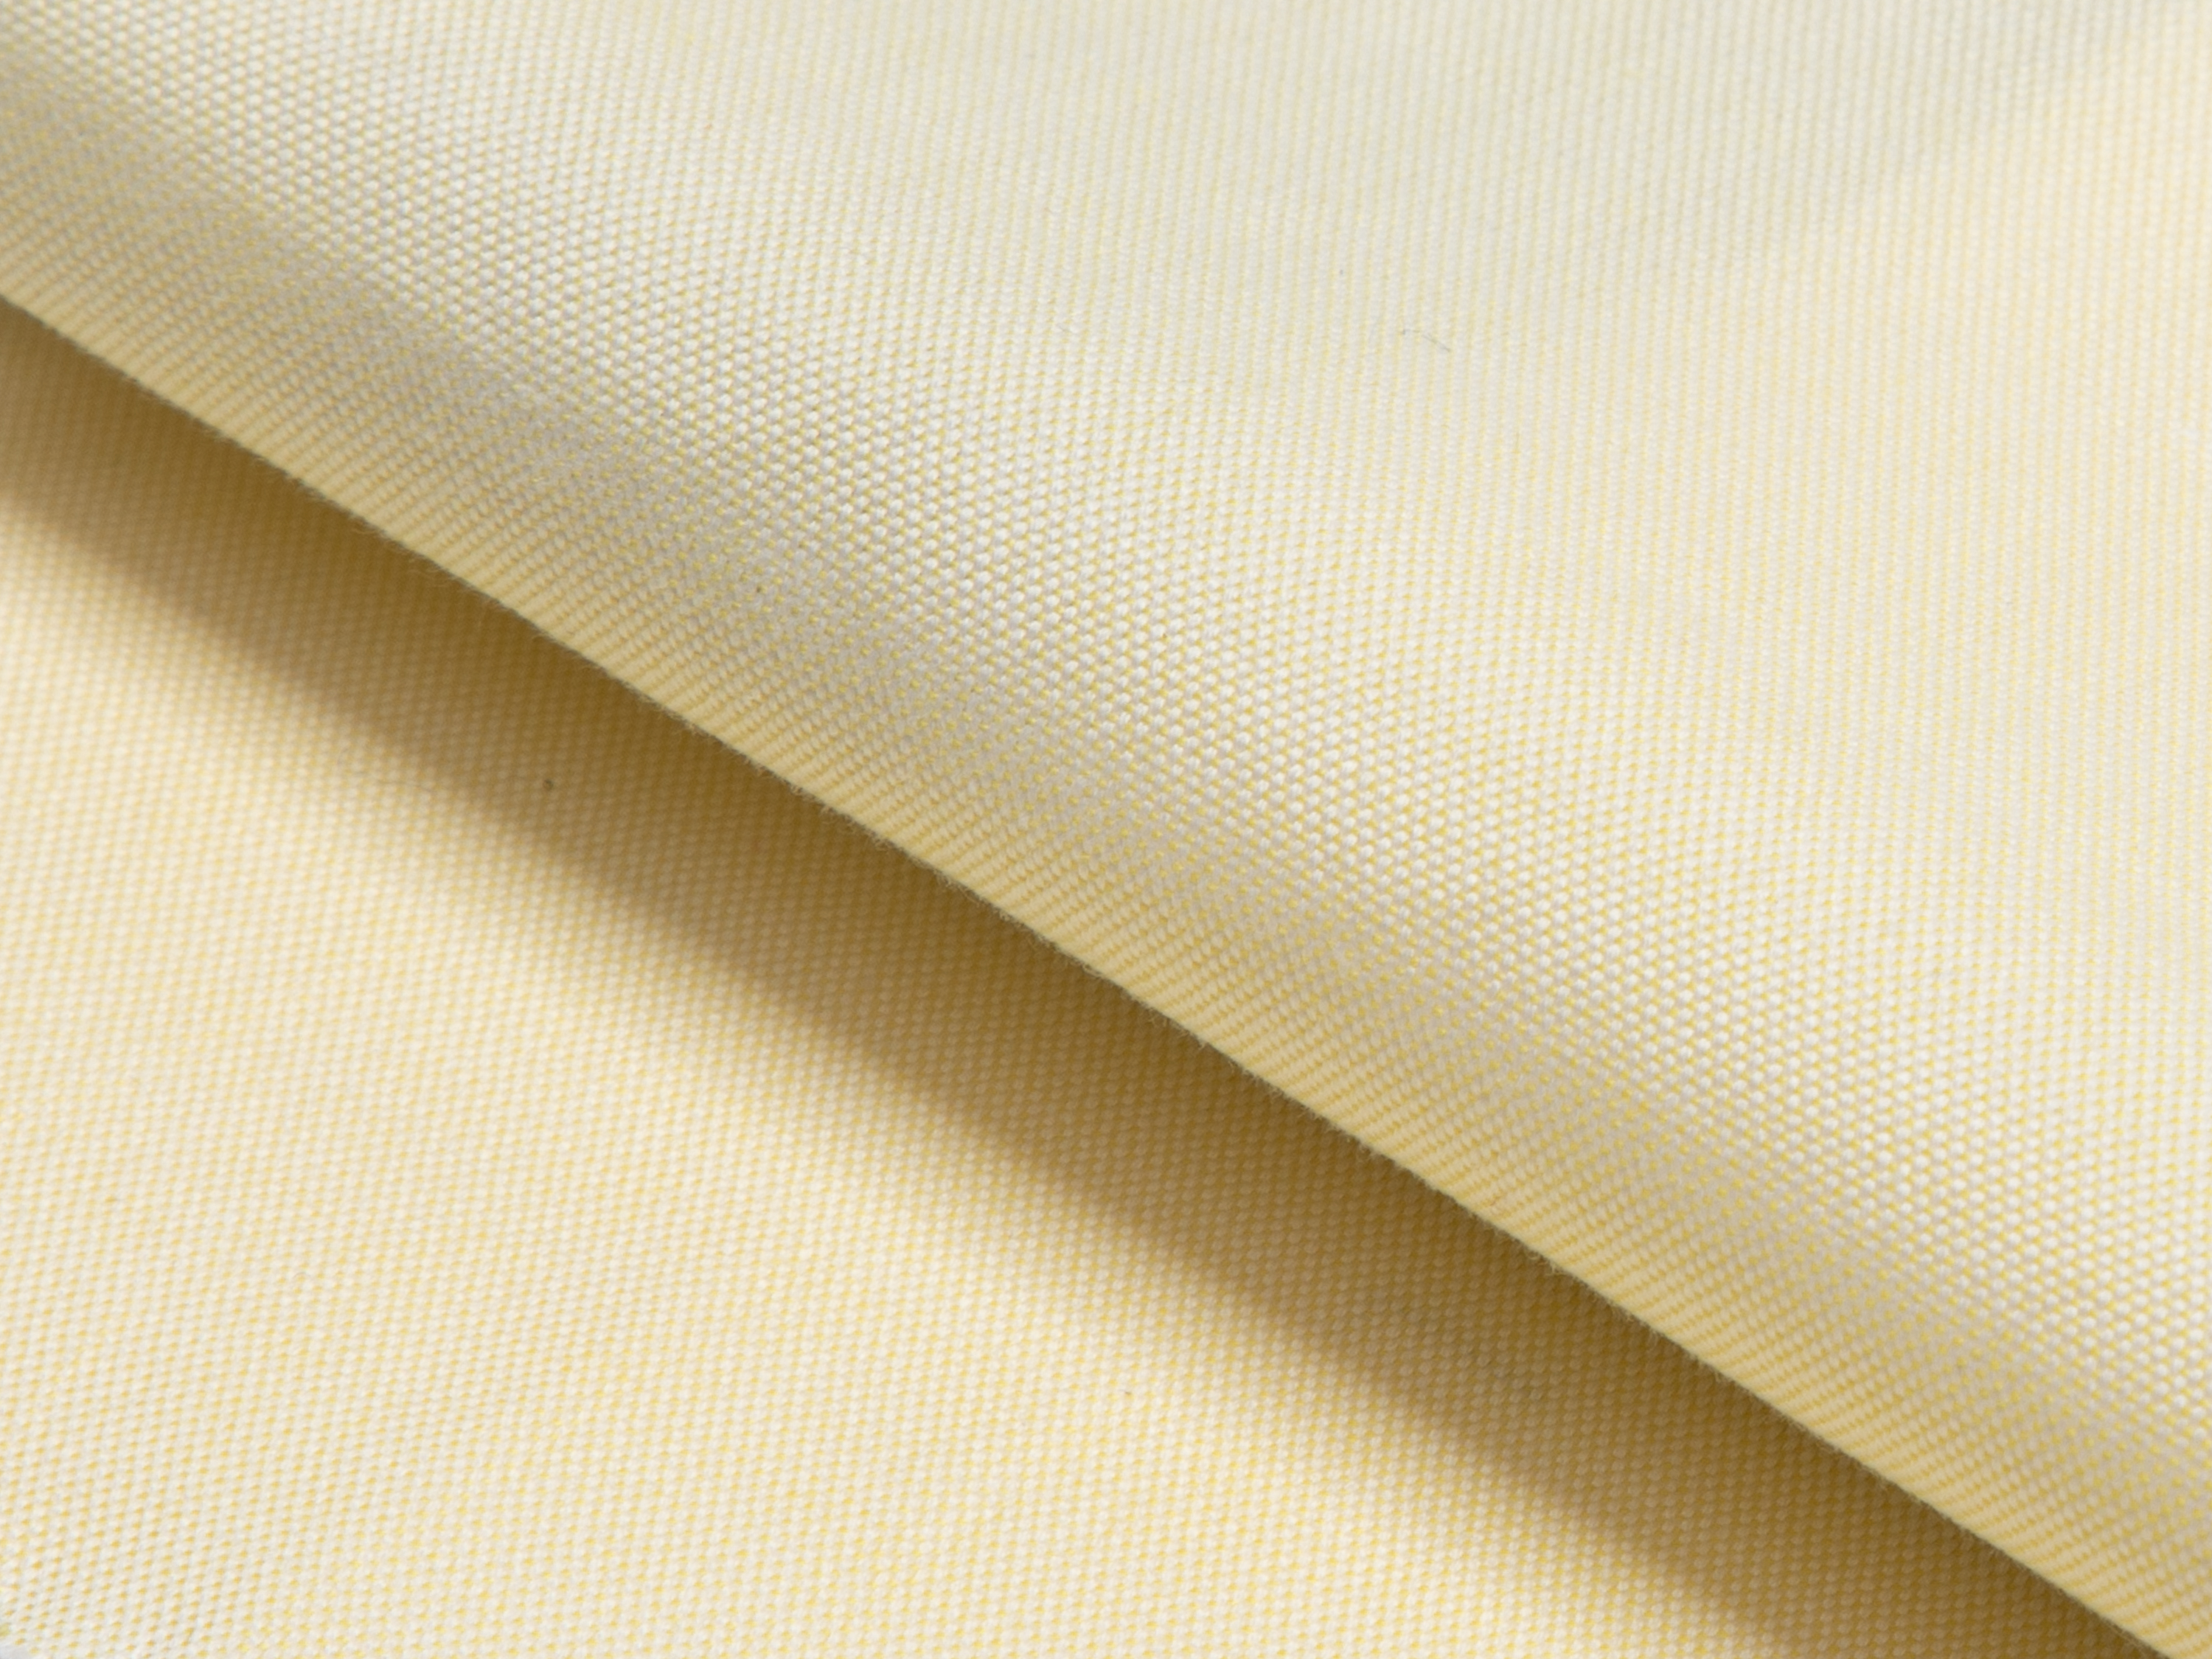 Buy tailor made shirts online - PINPOINT LUXURY (NEW) - Pinpoint Yellow